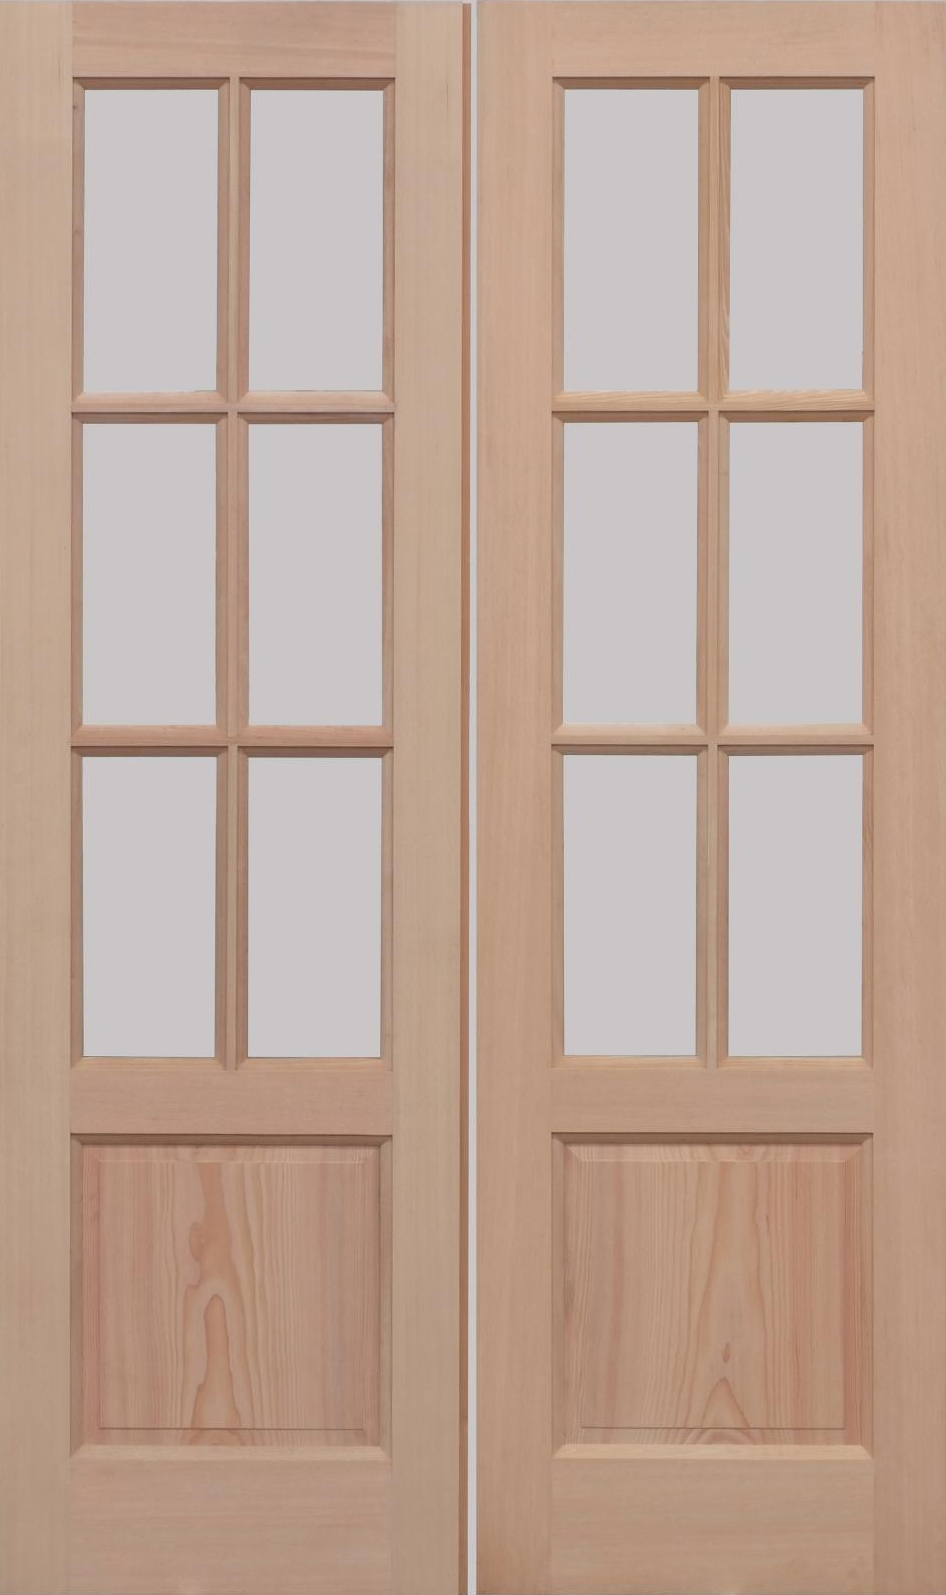 Pattern Gtp French Doors Pattern Gtp French Doors